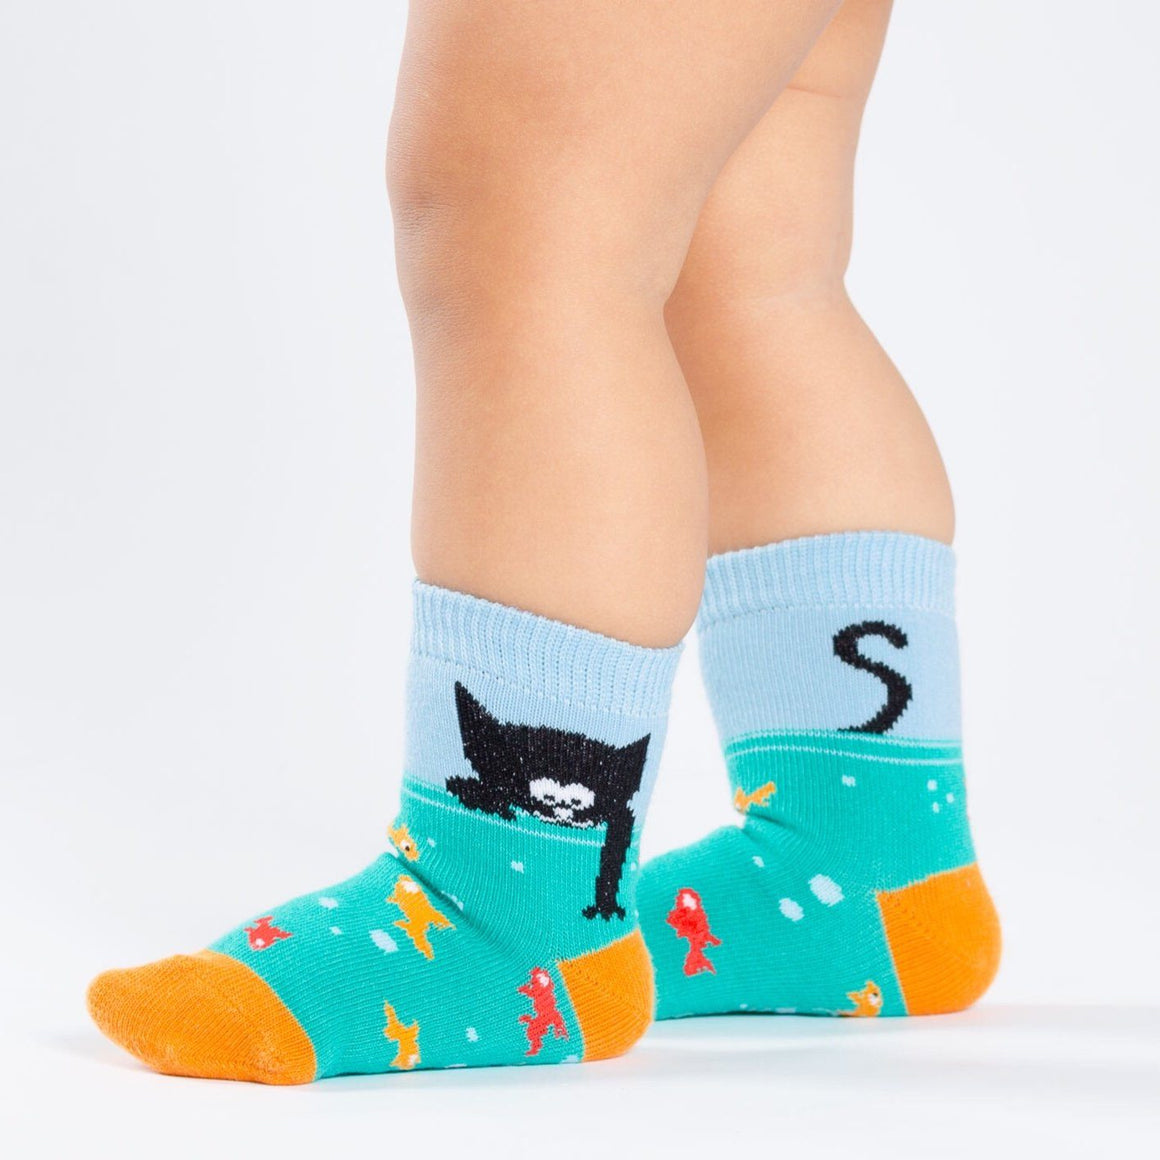 SOCKS - TODDLER CREW GONE FISHING, SOCKS, SOCK IT TO ME - Bon + Co. Party Studio